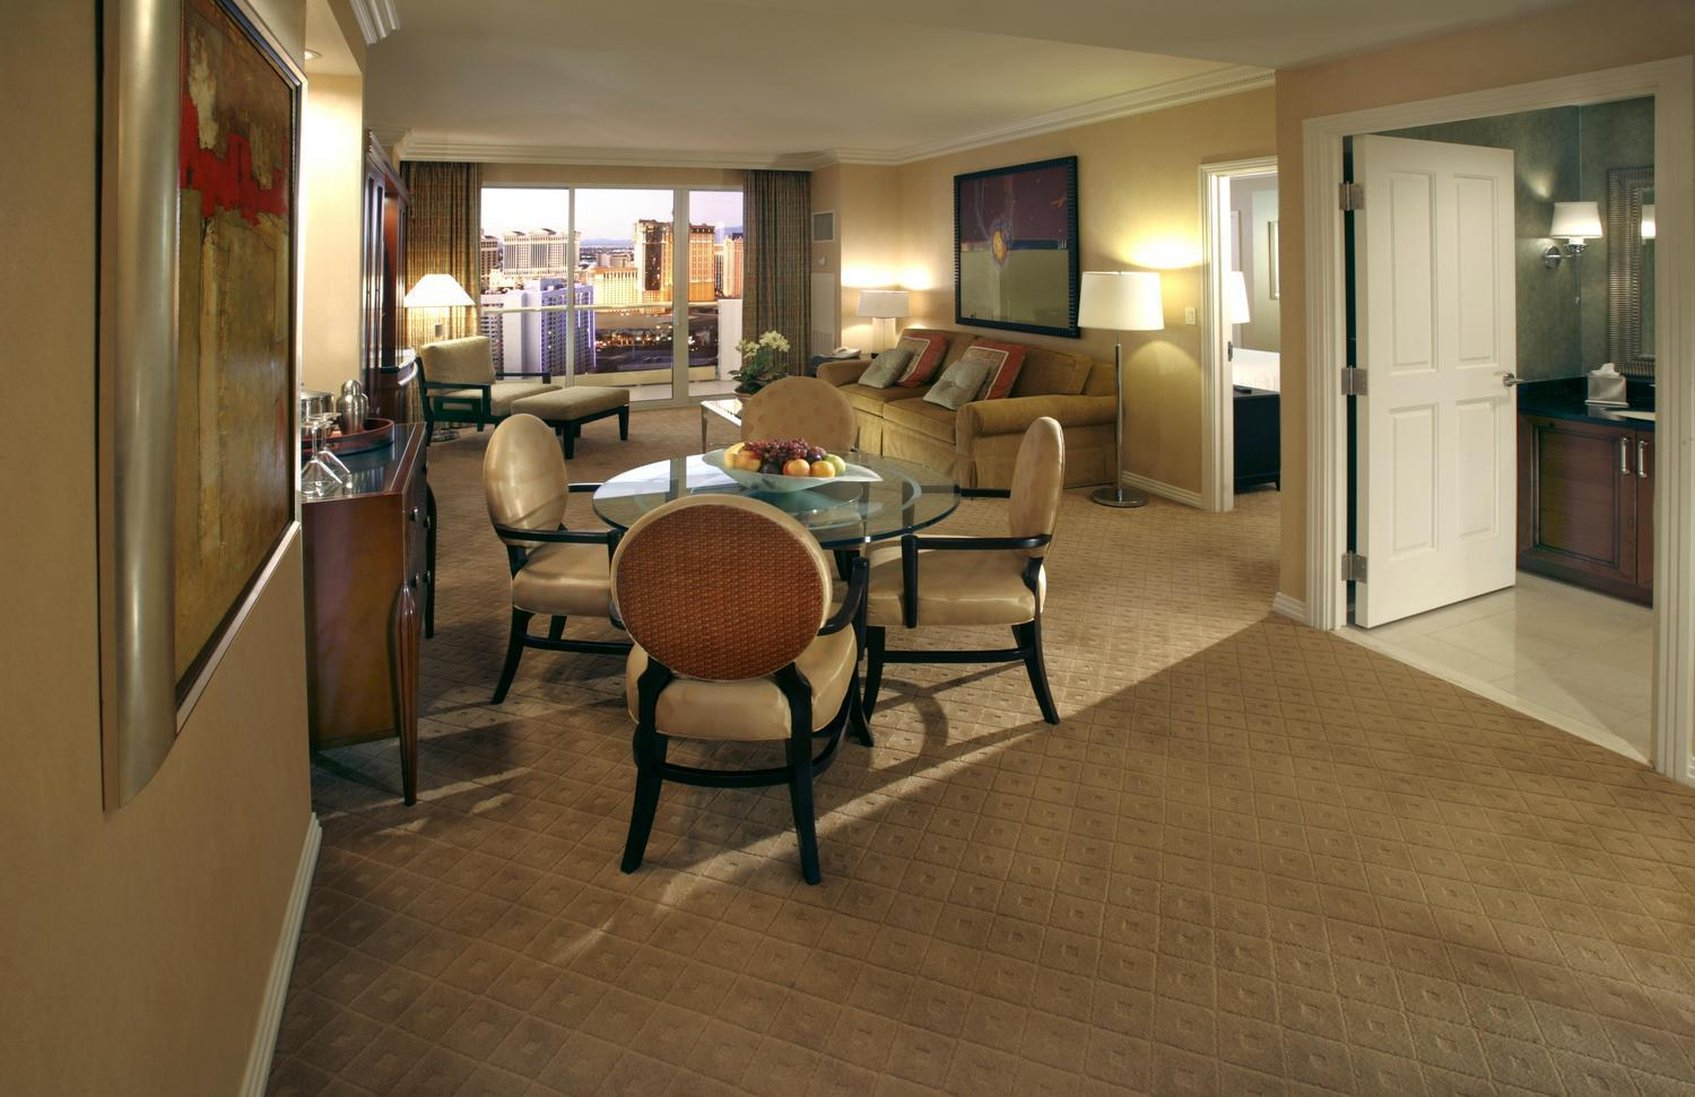 Meetings  Events At The Signature At MGM Grand Las Vegas Nevada - Mgm signature 2 bedroom suite